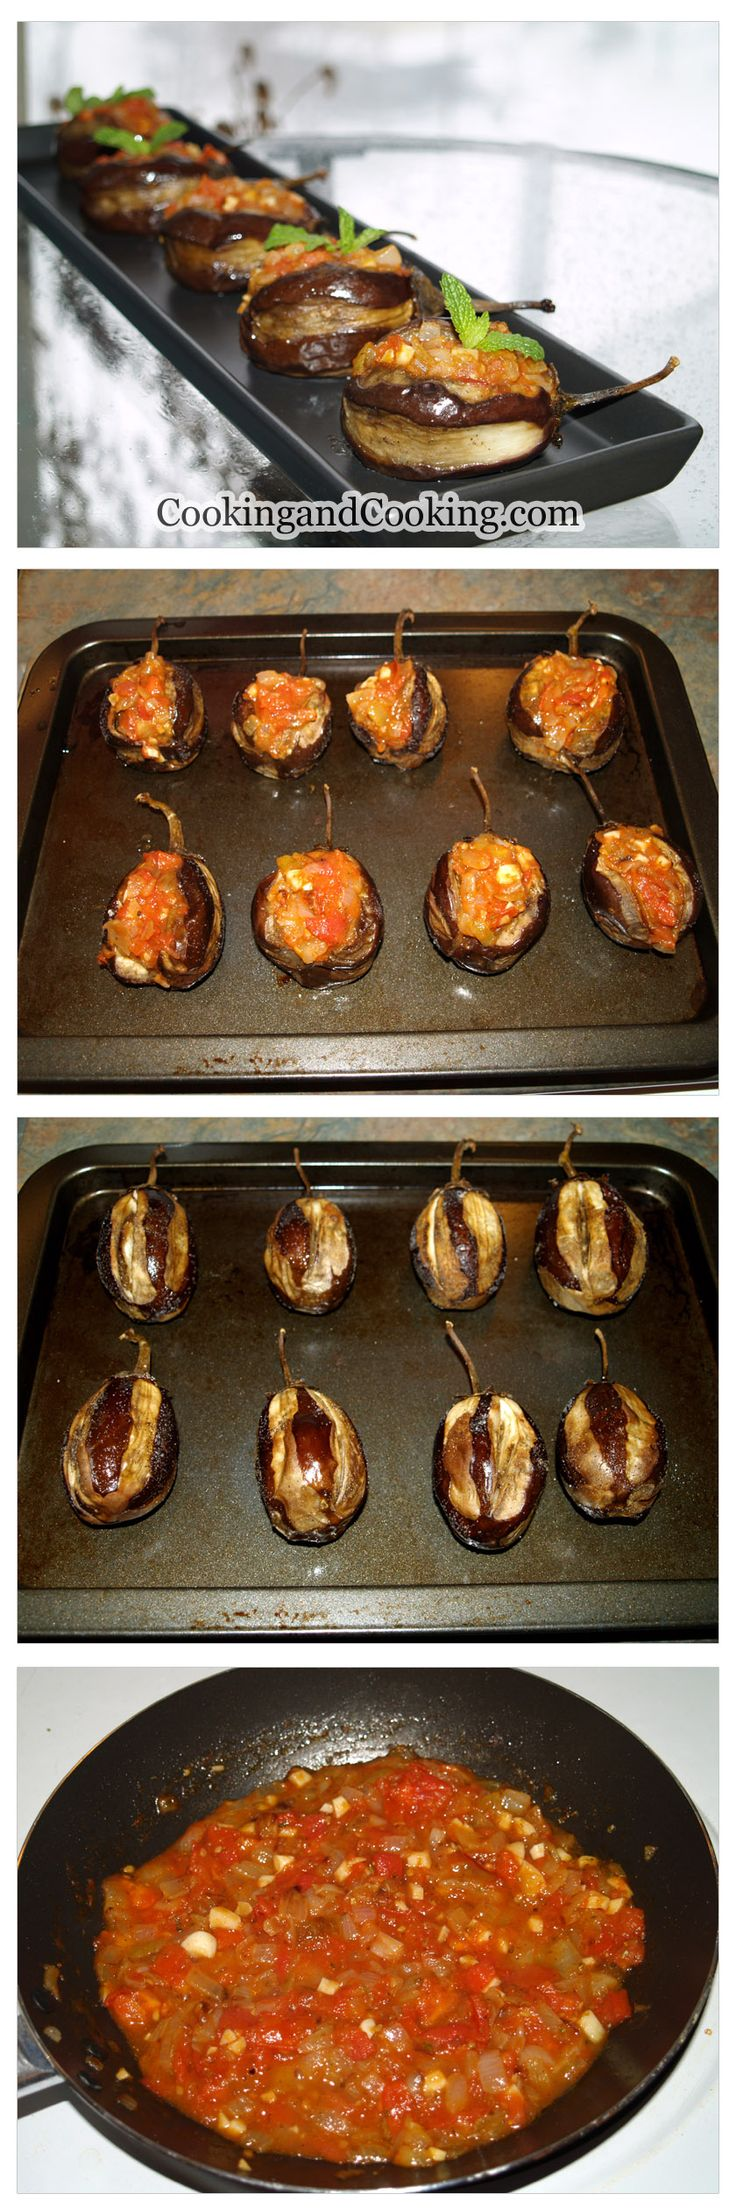 This Vegetable Stuffed Eggplant recipe is a perfect veggie appetizer for vegetarian or even can be served as a main dish with yogurt and bread.